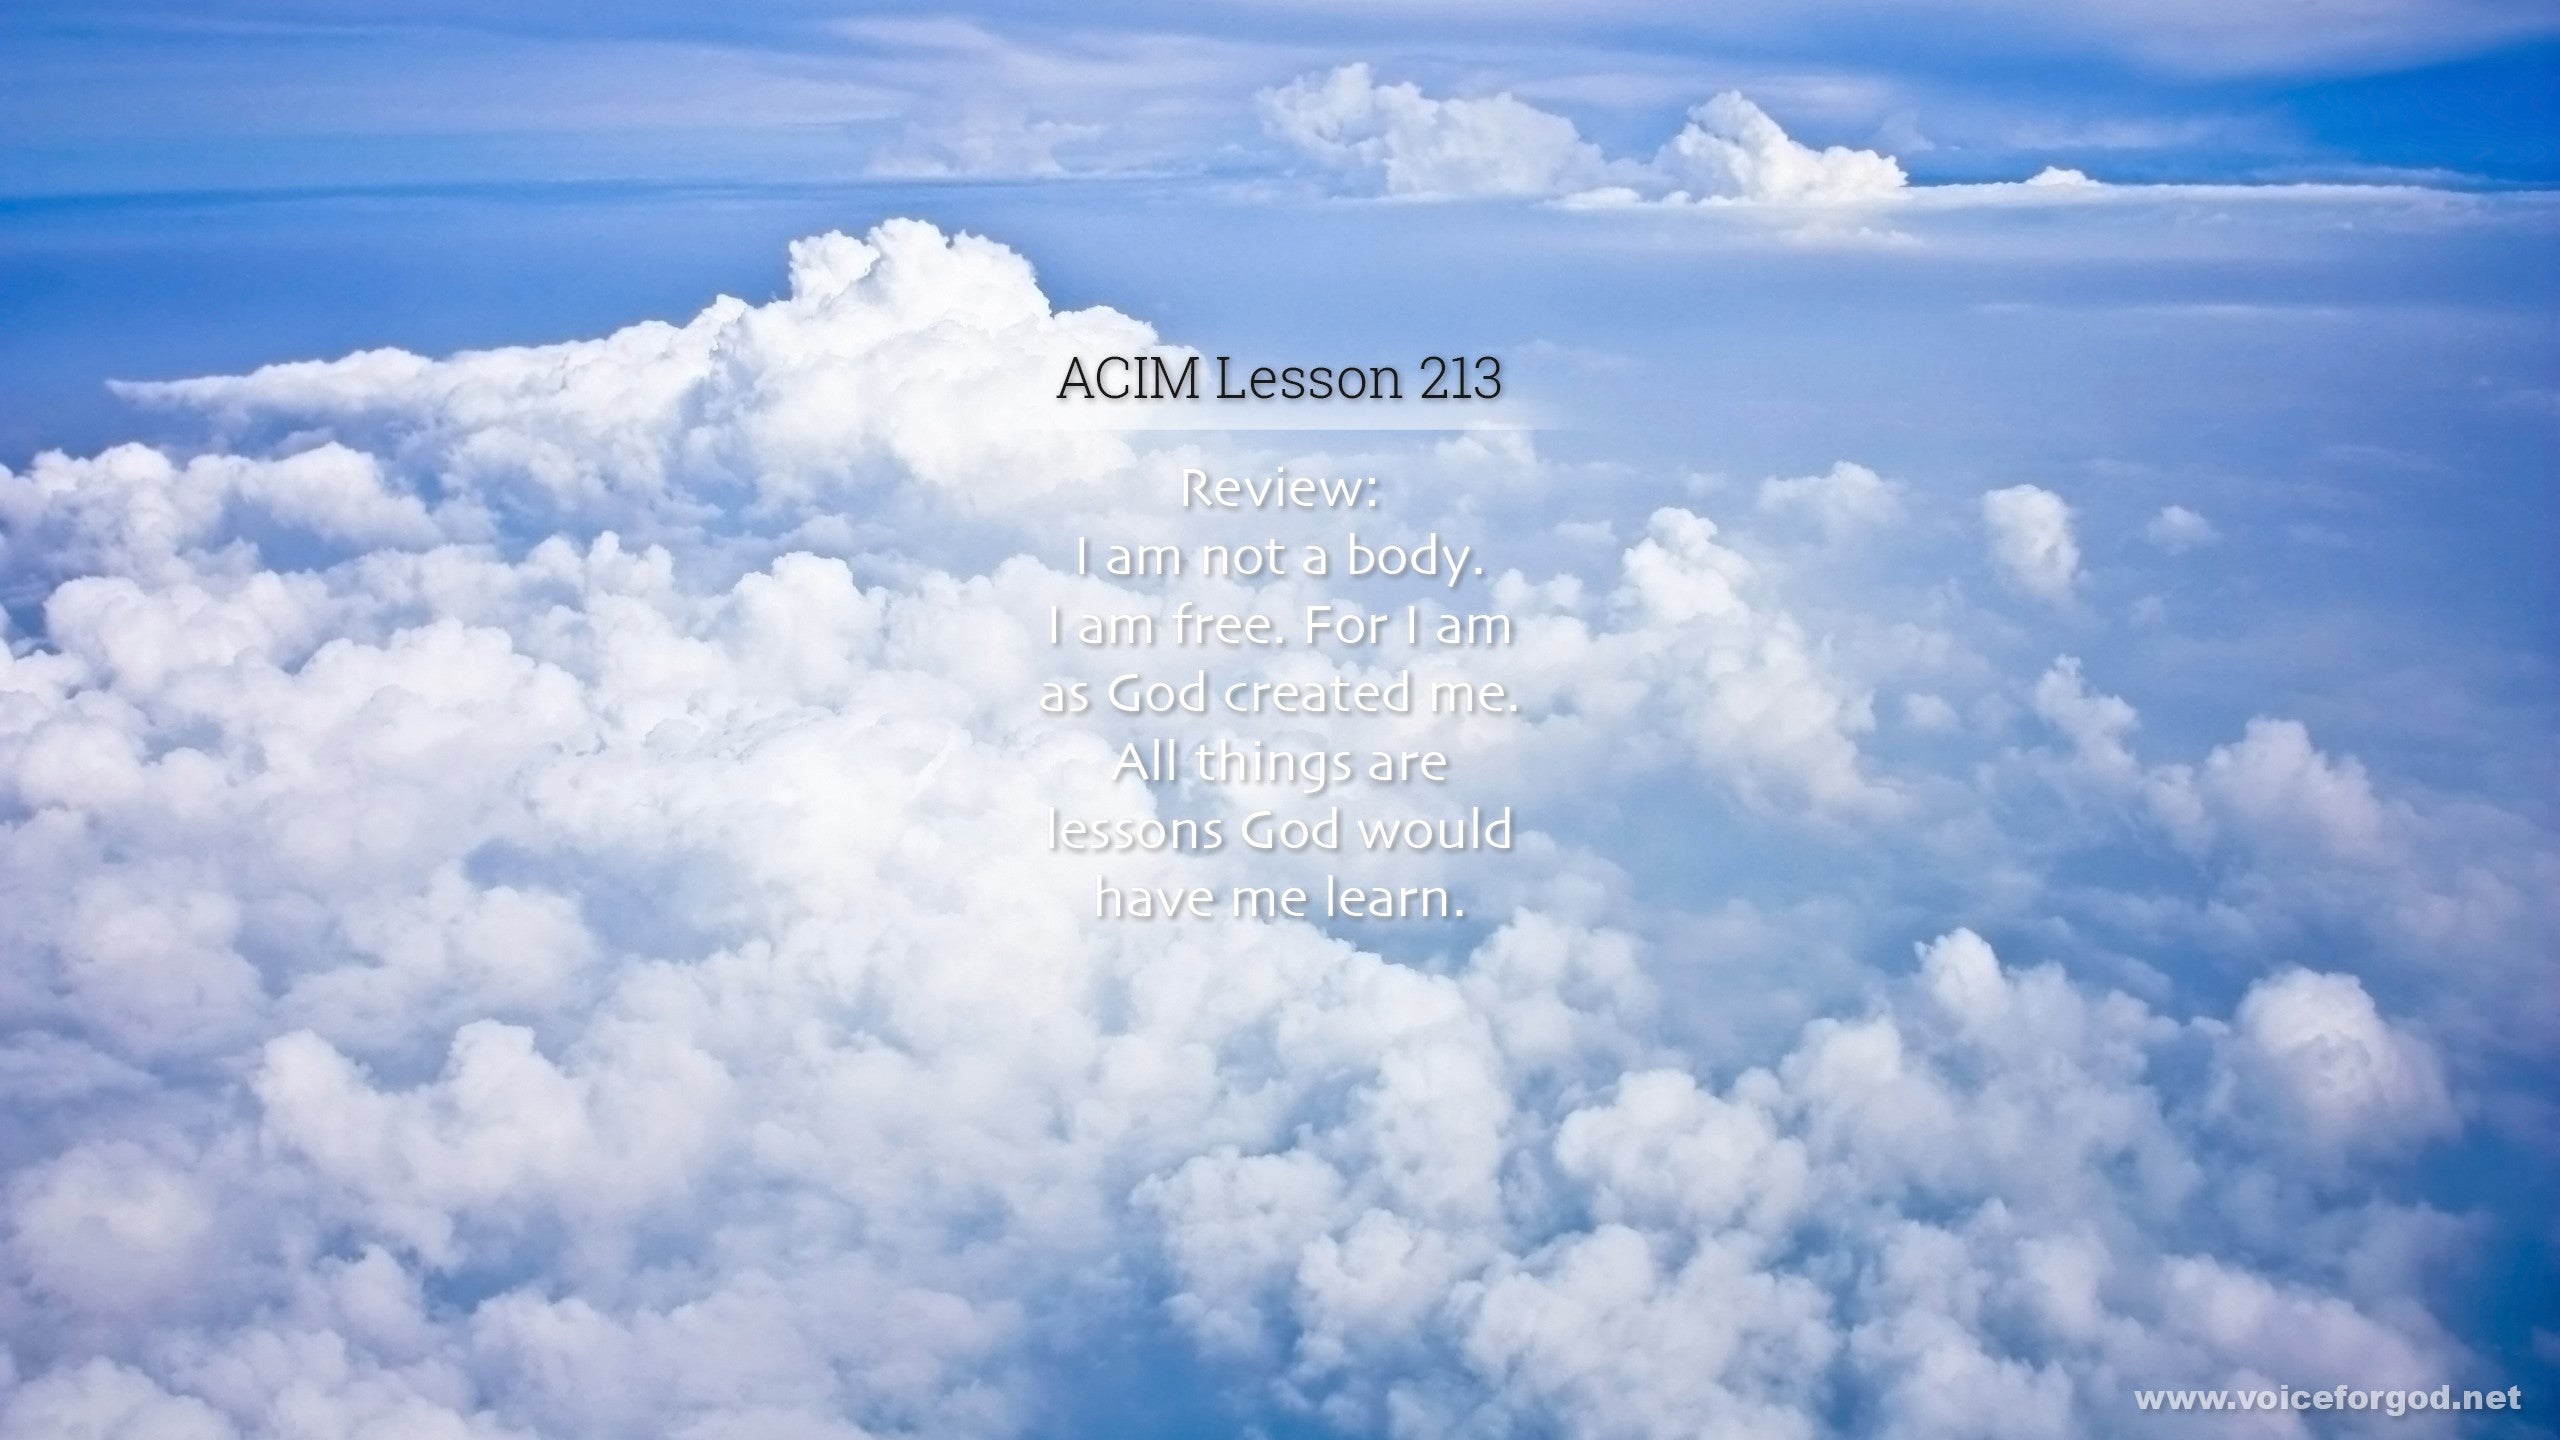 ACIM Lesson 213 - A Course in Miracles Workbook Lesson 213